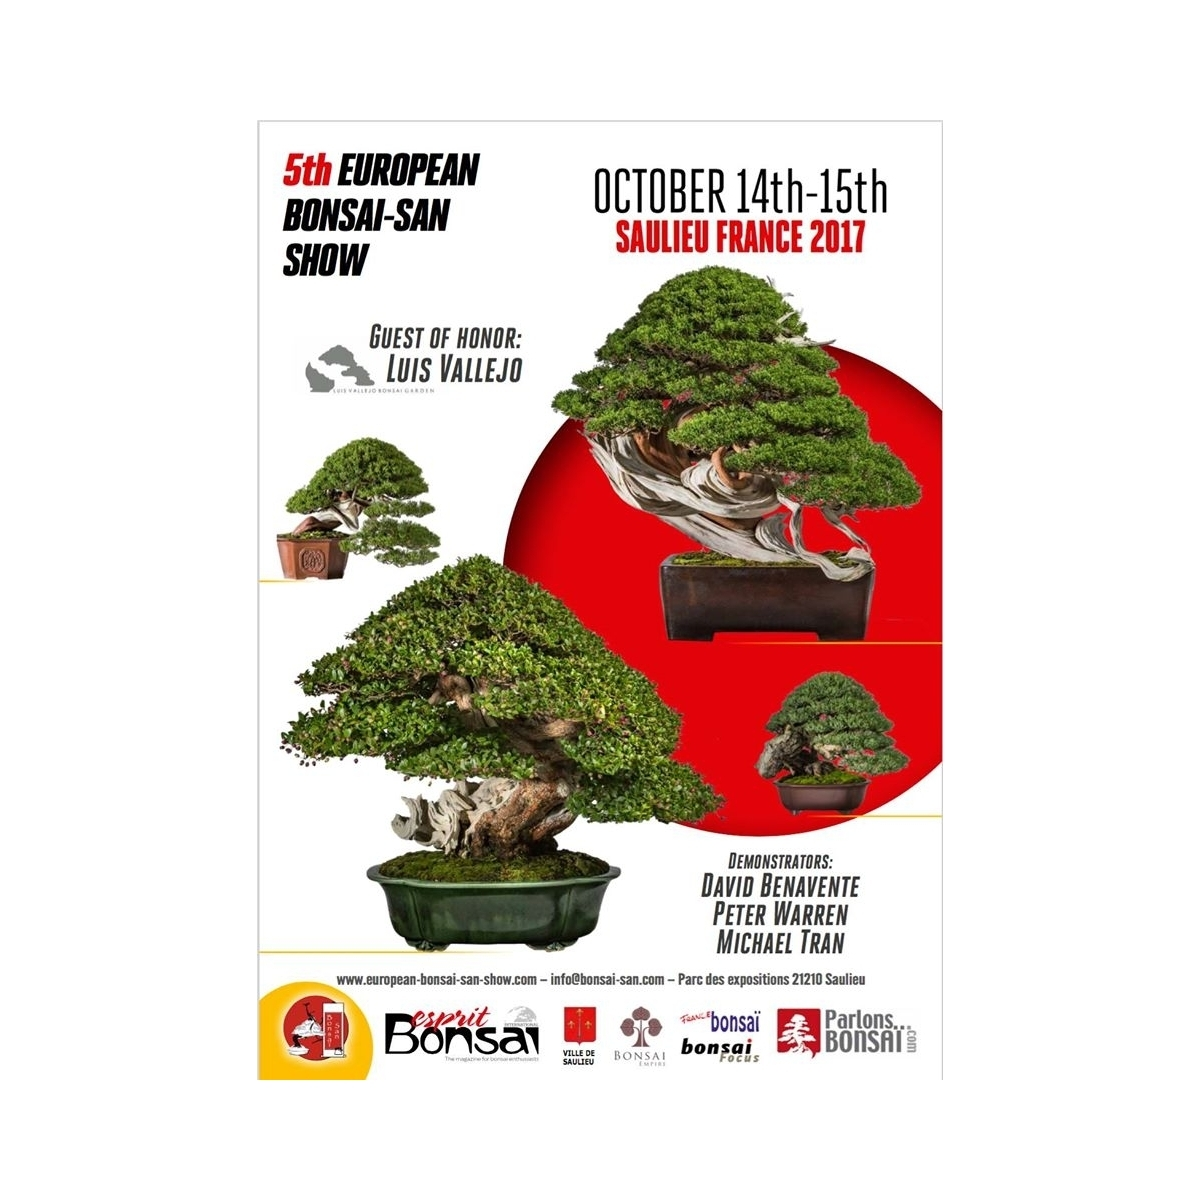 5 European Bonsai-San Show